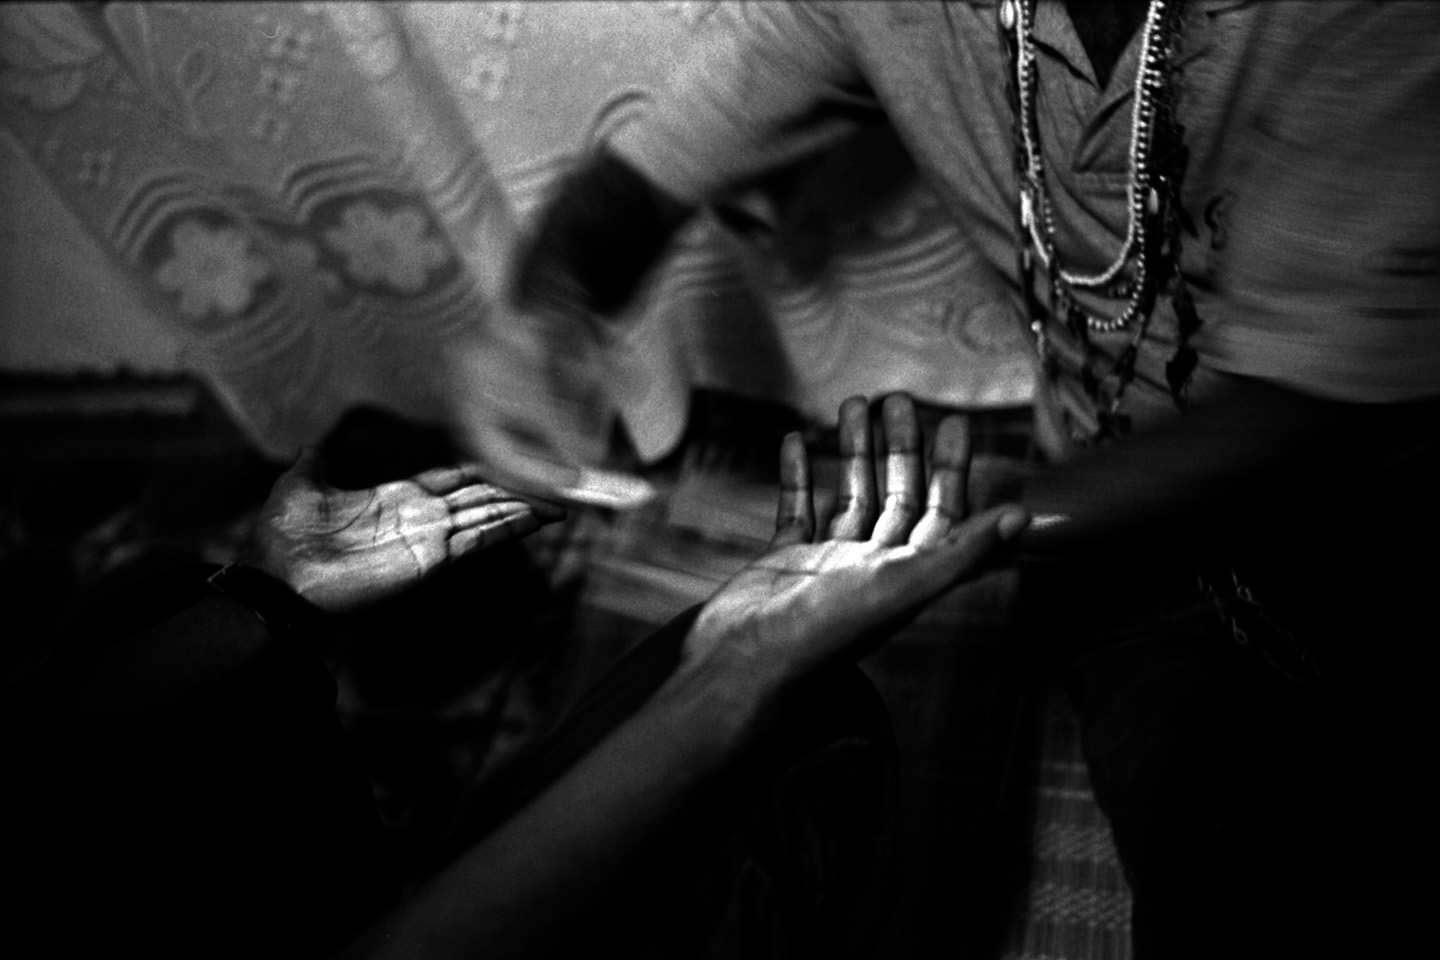 A babalawo begins the Santeria ceremony by rubbing chalk on a man's hands. Havana, Cuba.